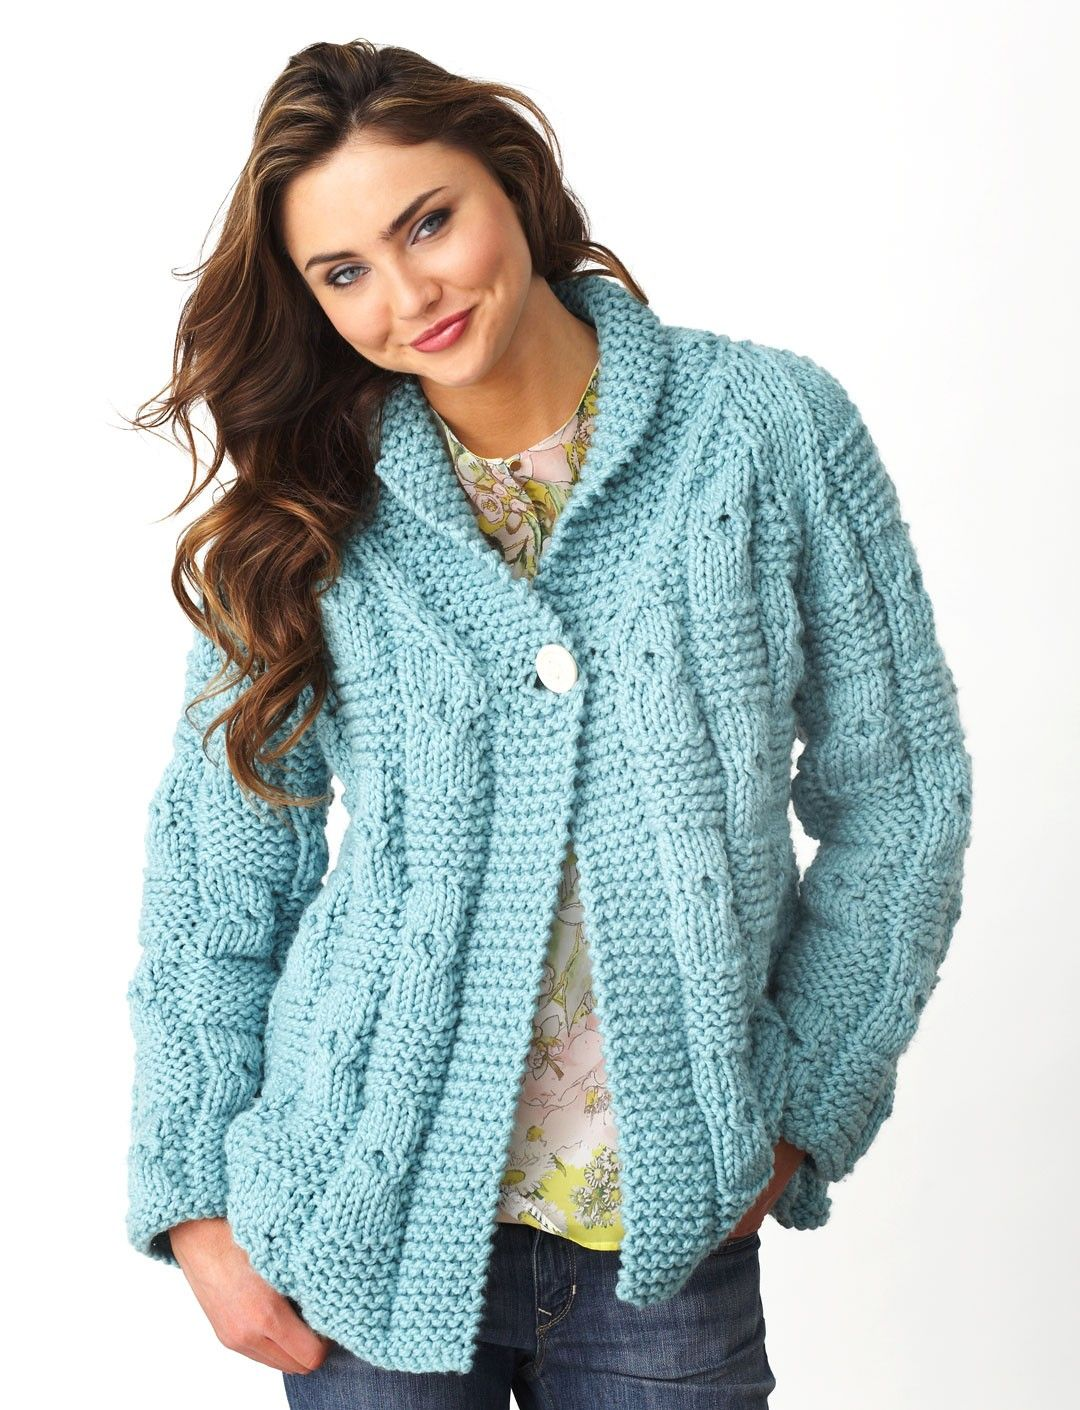 Yarnspirations bernat textured checks cardigan patterns free cardigan sweater pattern this oversize check pattern is accented with a garter stitch border and shawl collar knit in bernat softee chunky bankloansurffo Gallery